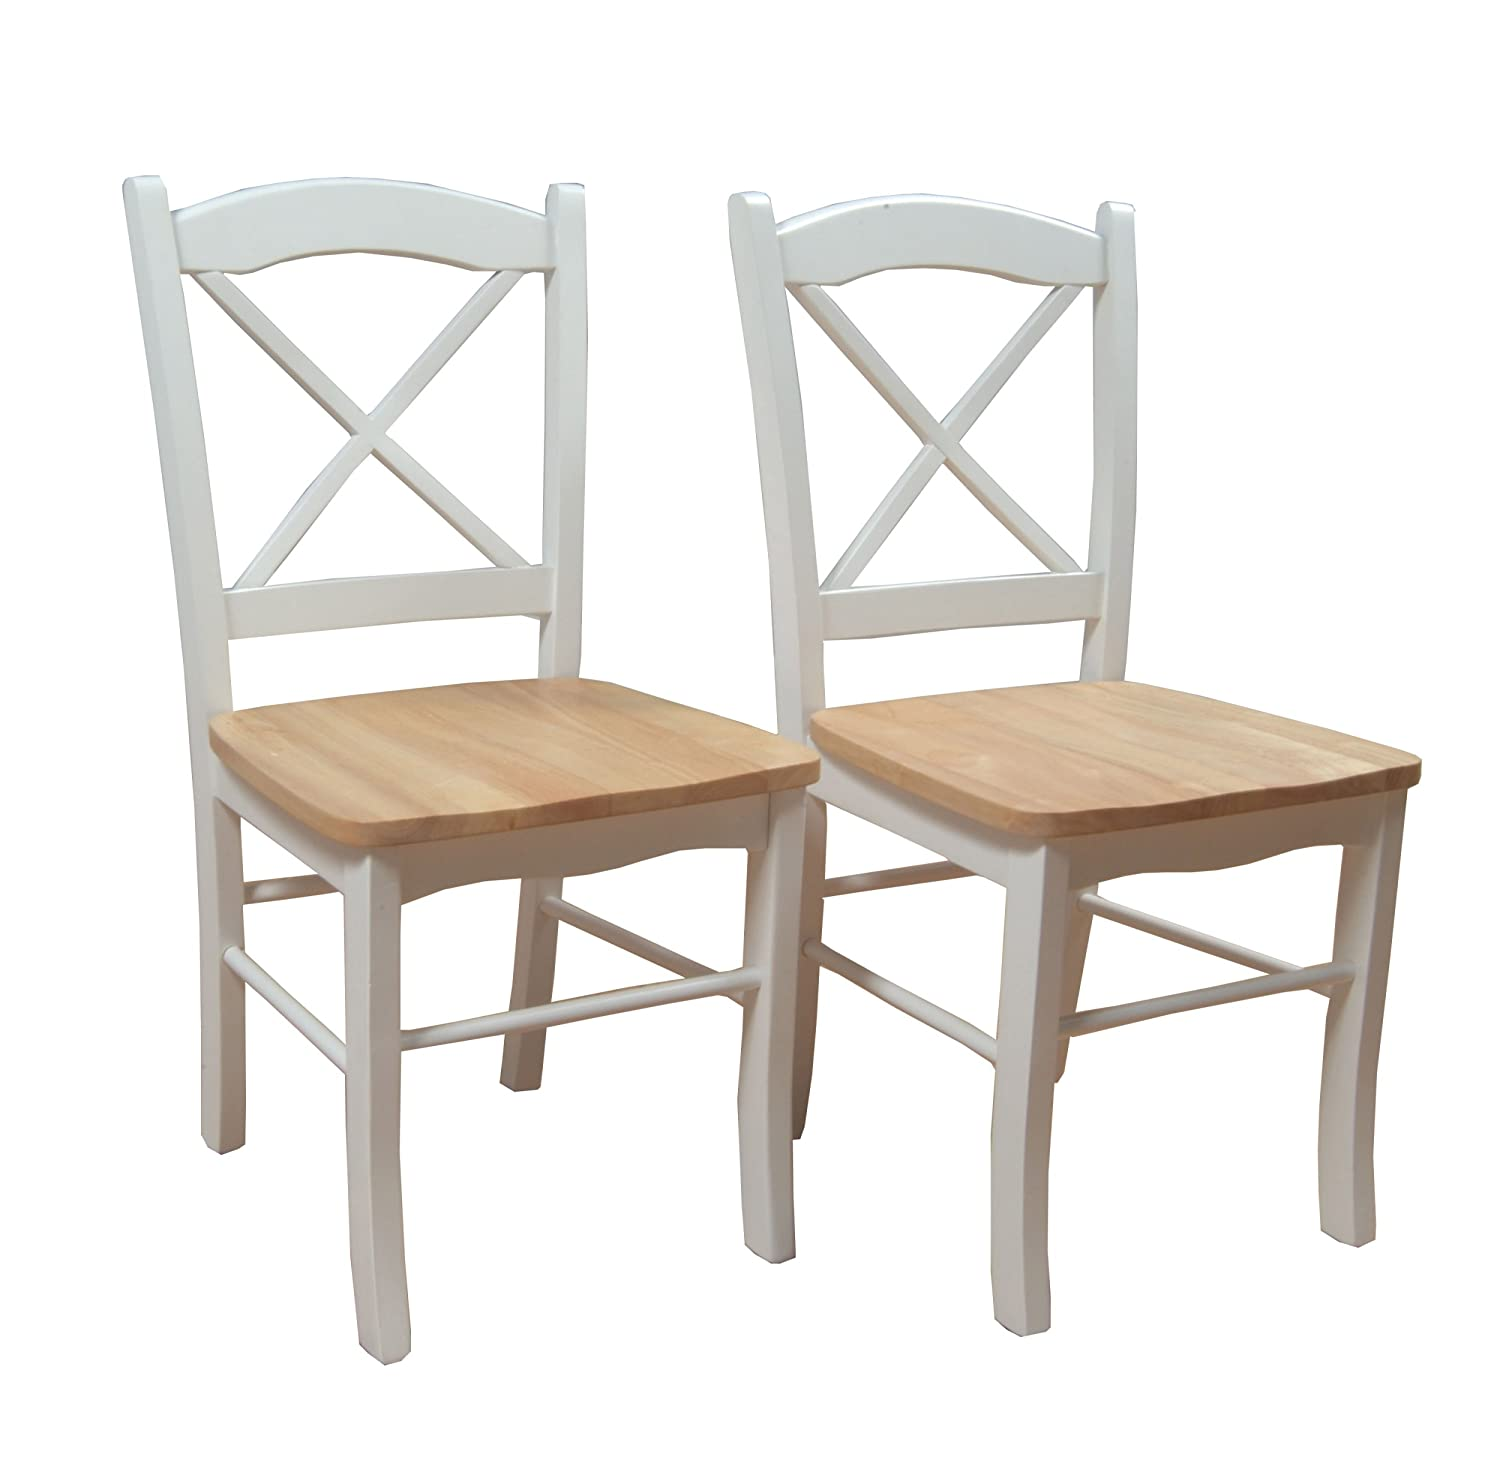 Delicieux Amazon.com: Target Marketing Systems Set Of 2 Tiffany Dining Chairs With  Cross Back, Set Of 2, White/Natural: Kitchen U0026 Dining